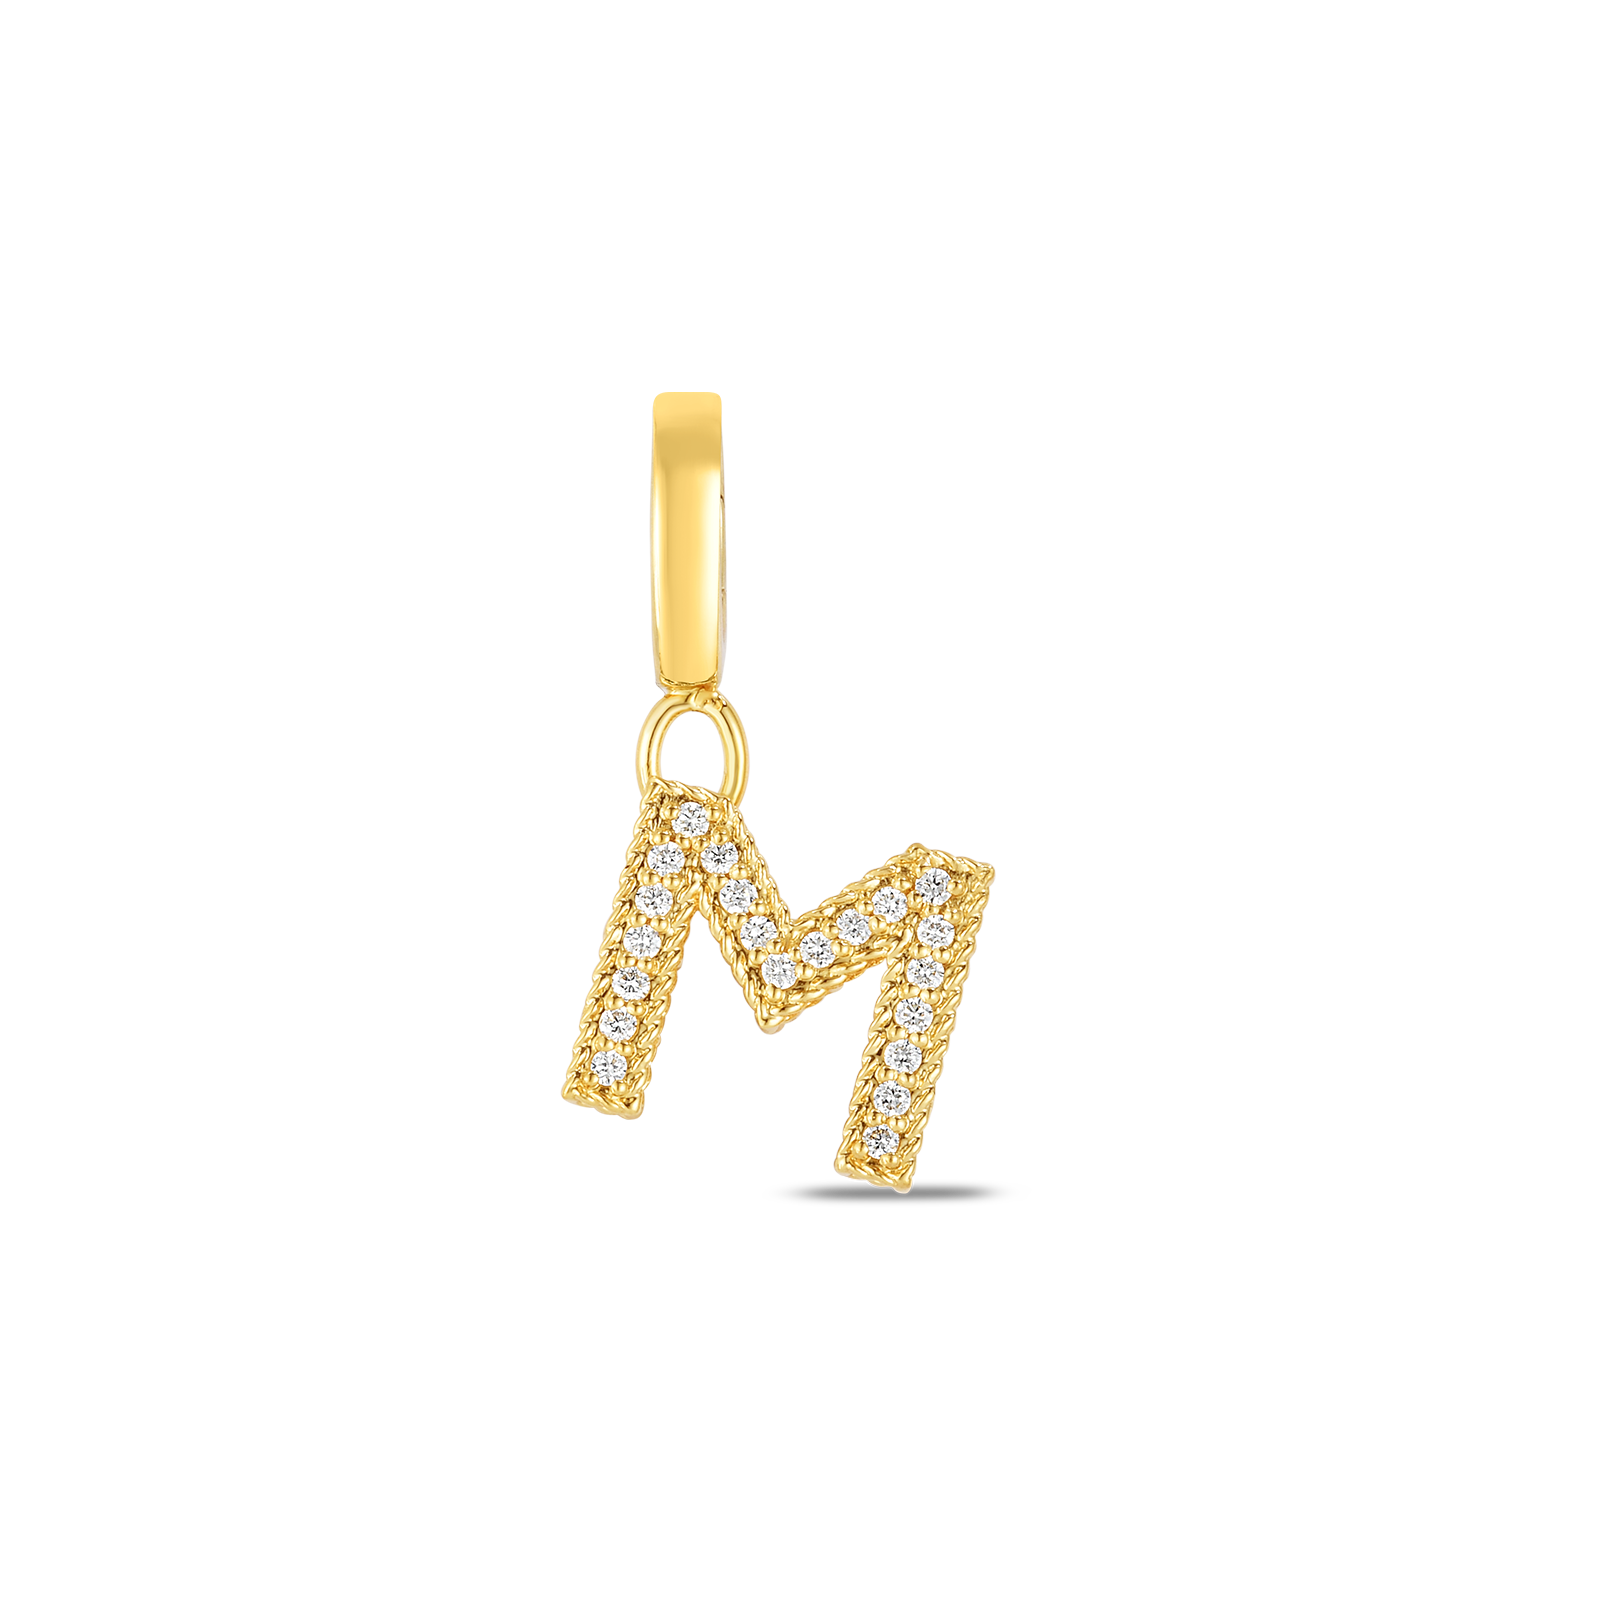 18k Gold & Diamond Princess Letter 'M' Charm